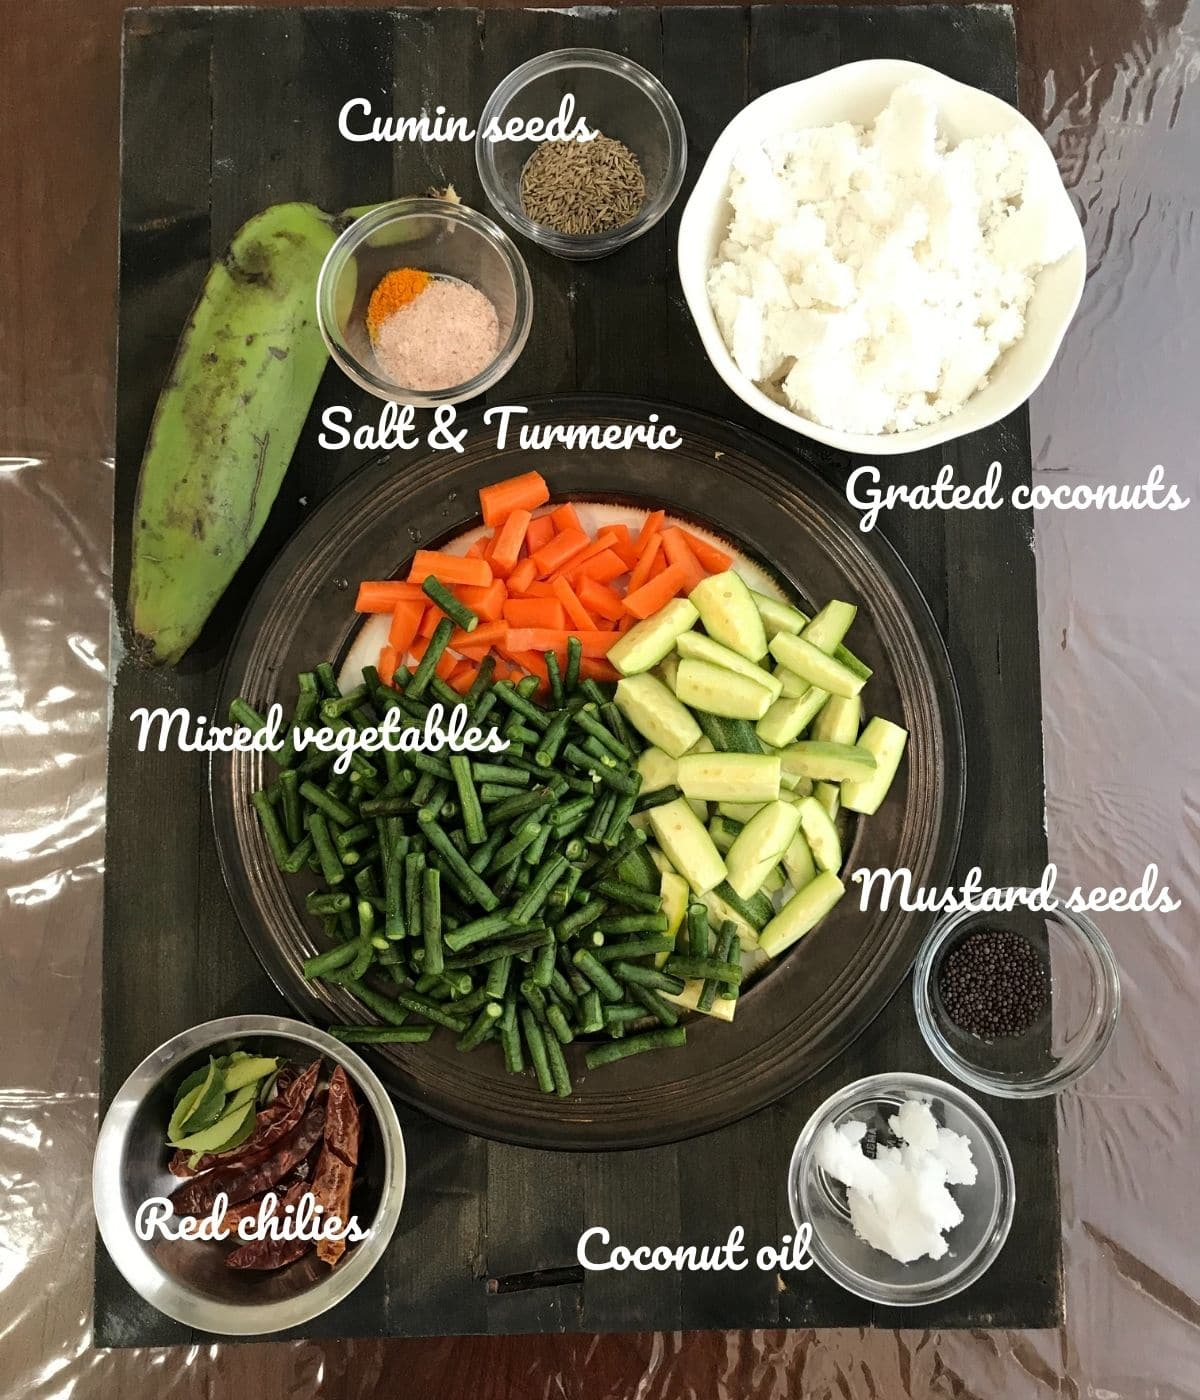 A board is filled with vegetables, spices, and grated coconuts